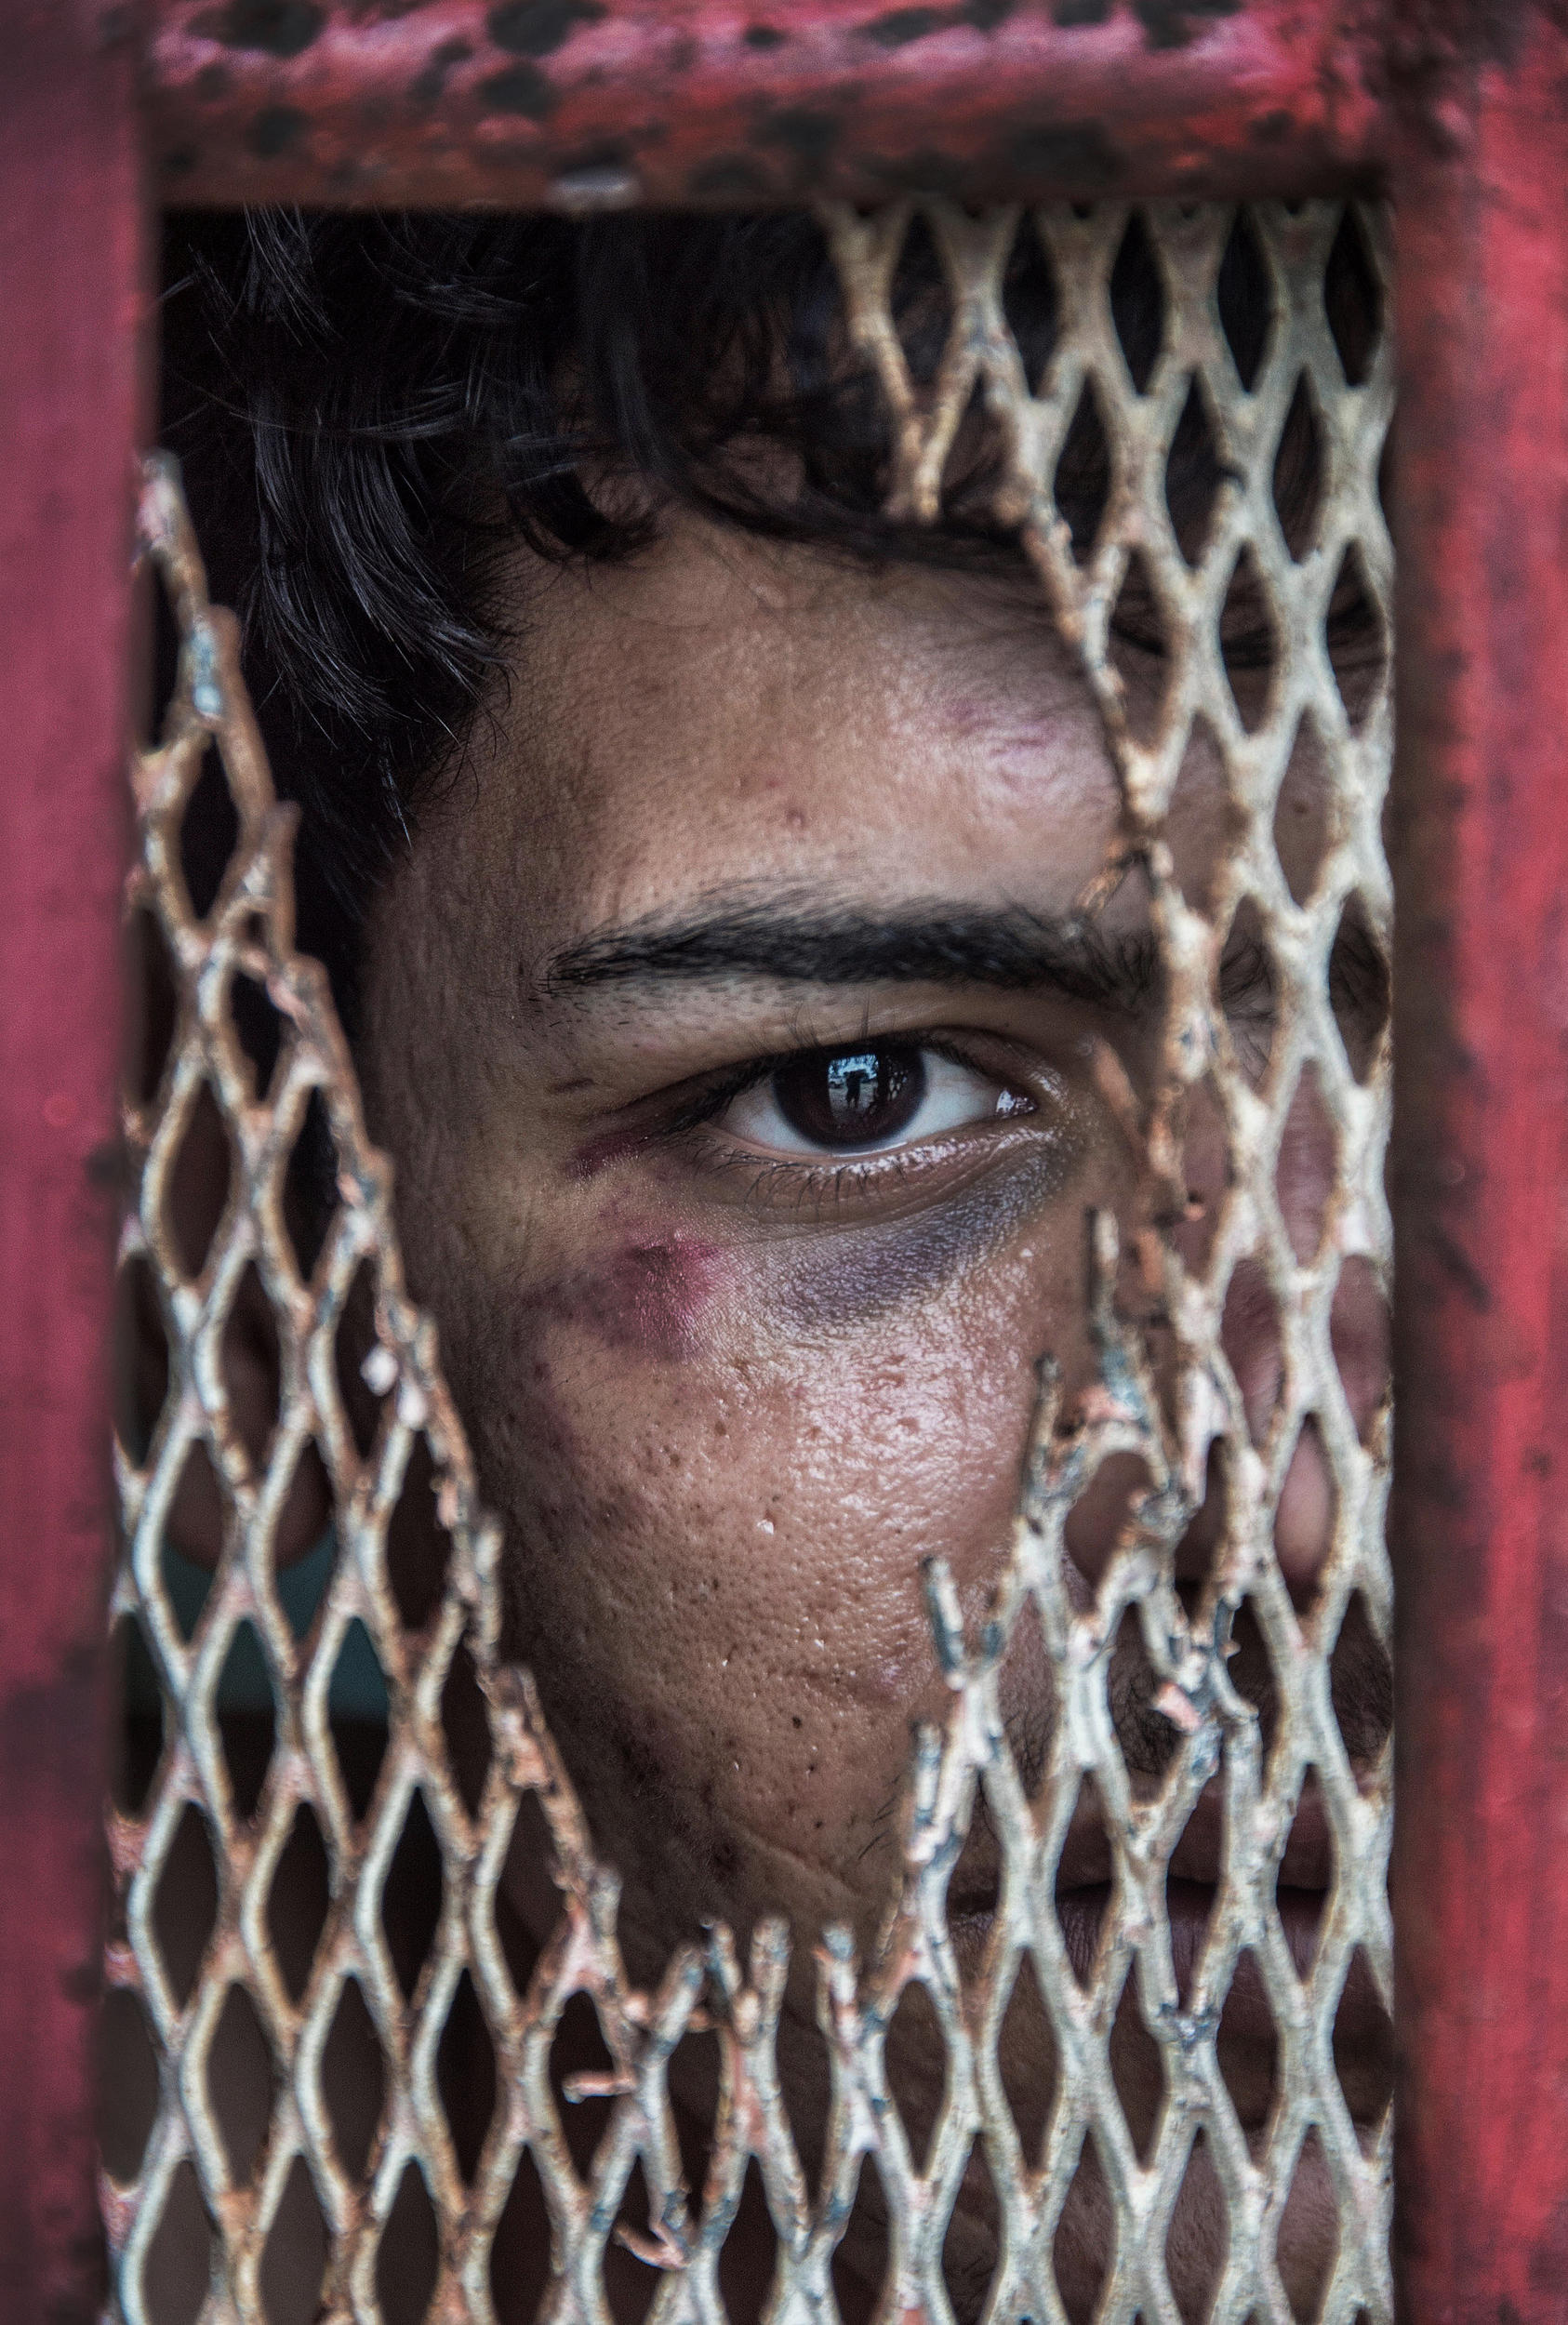 A close up colour photograph of a boy looking through the hole in a broken metal grate.